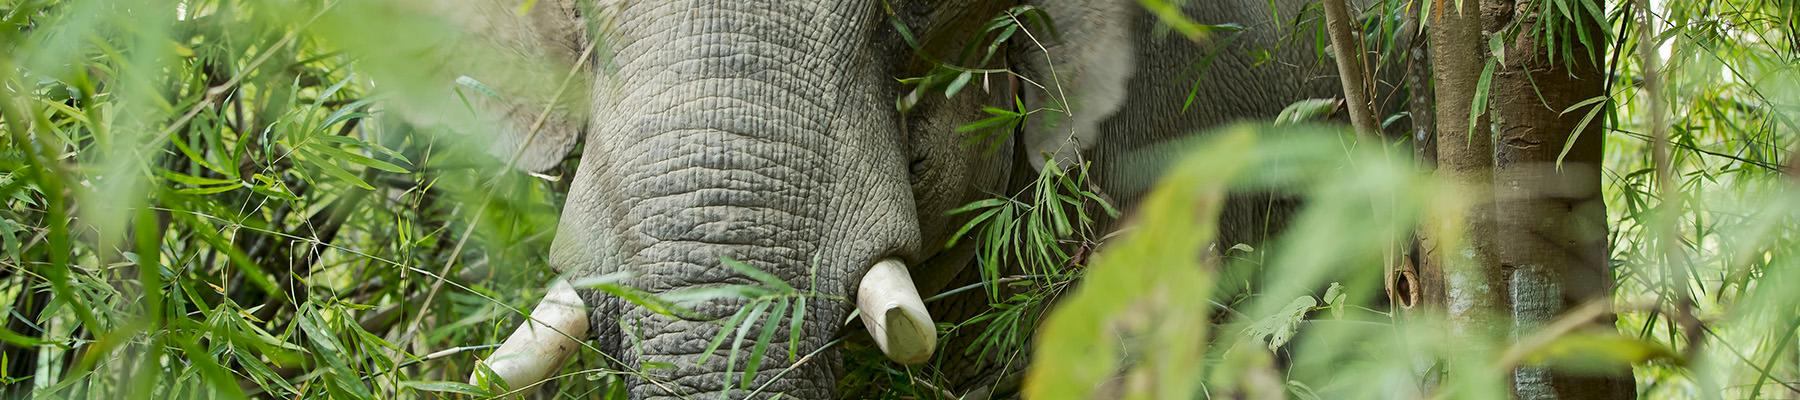 Asian elephant Elephas maximus in the jungle, Myanmar © Julia Thiemann / WWF-Germany